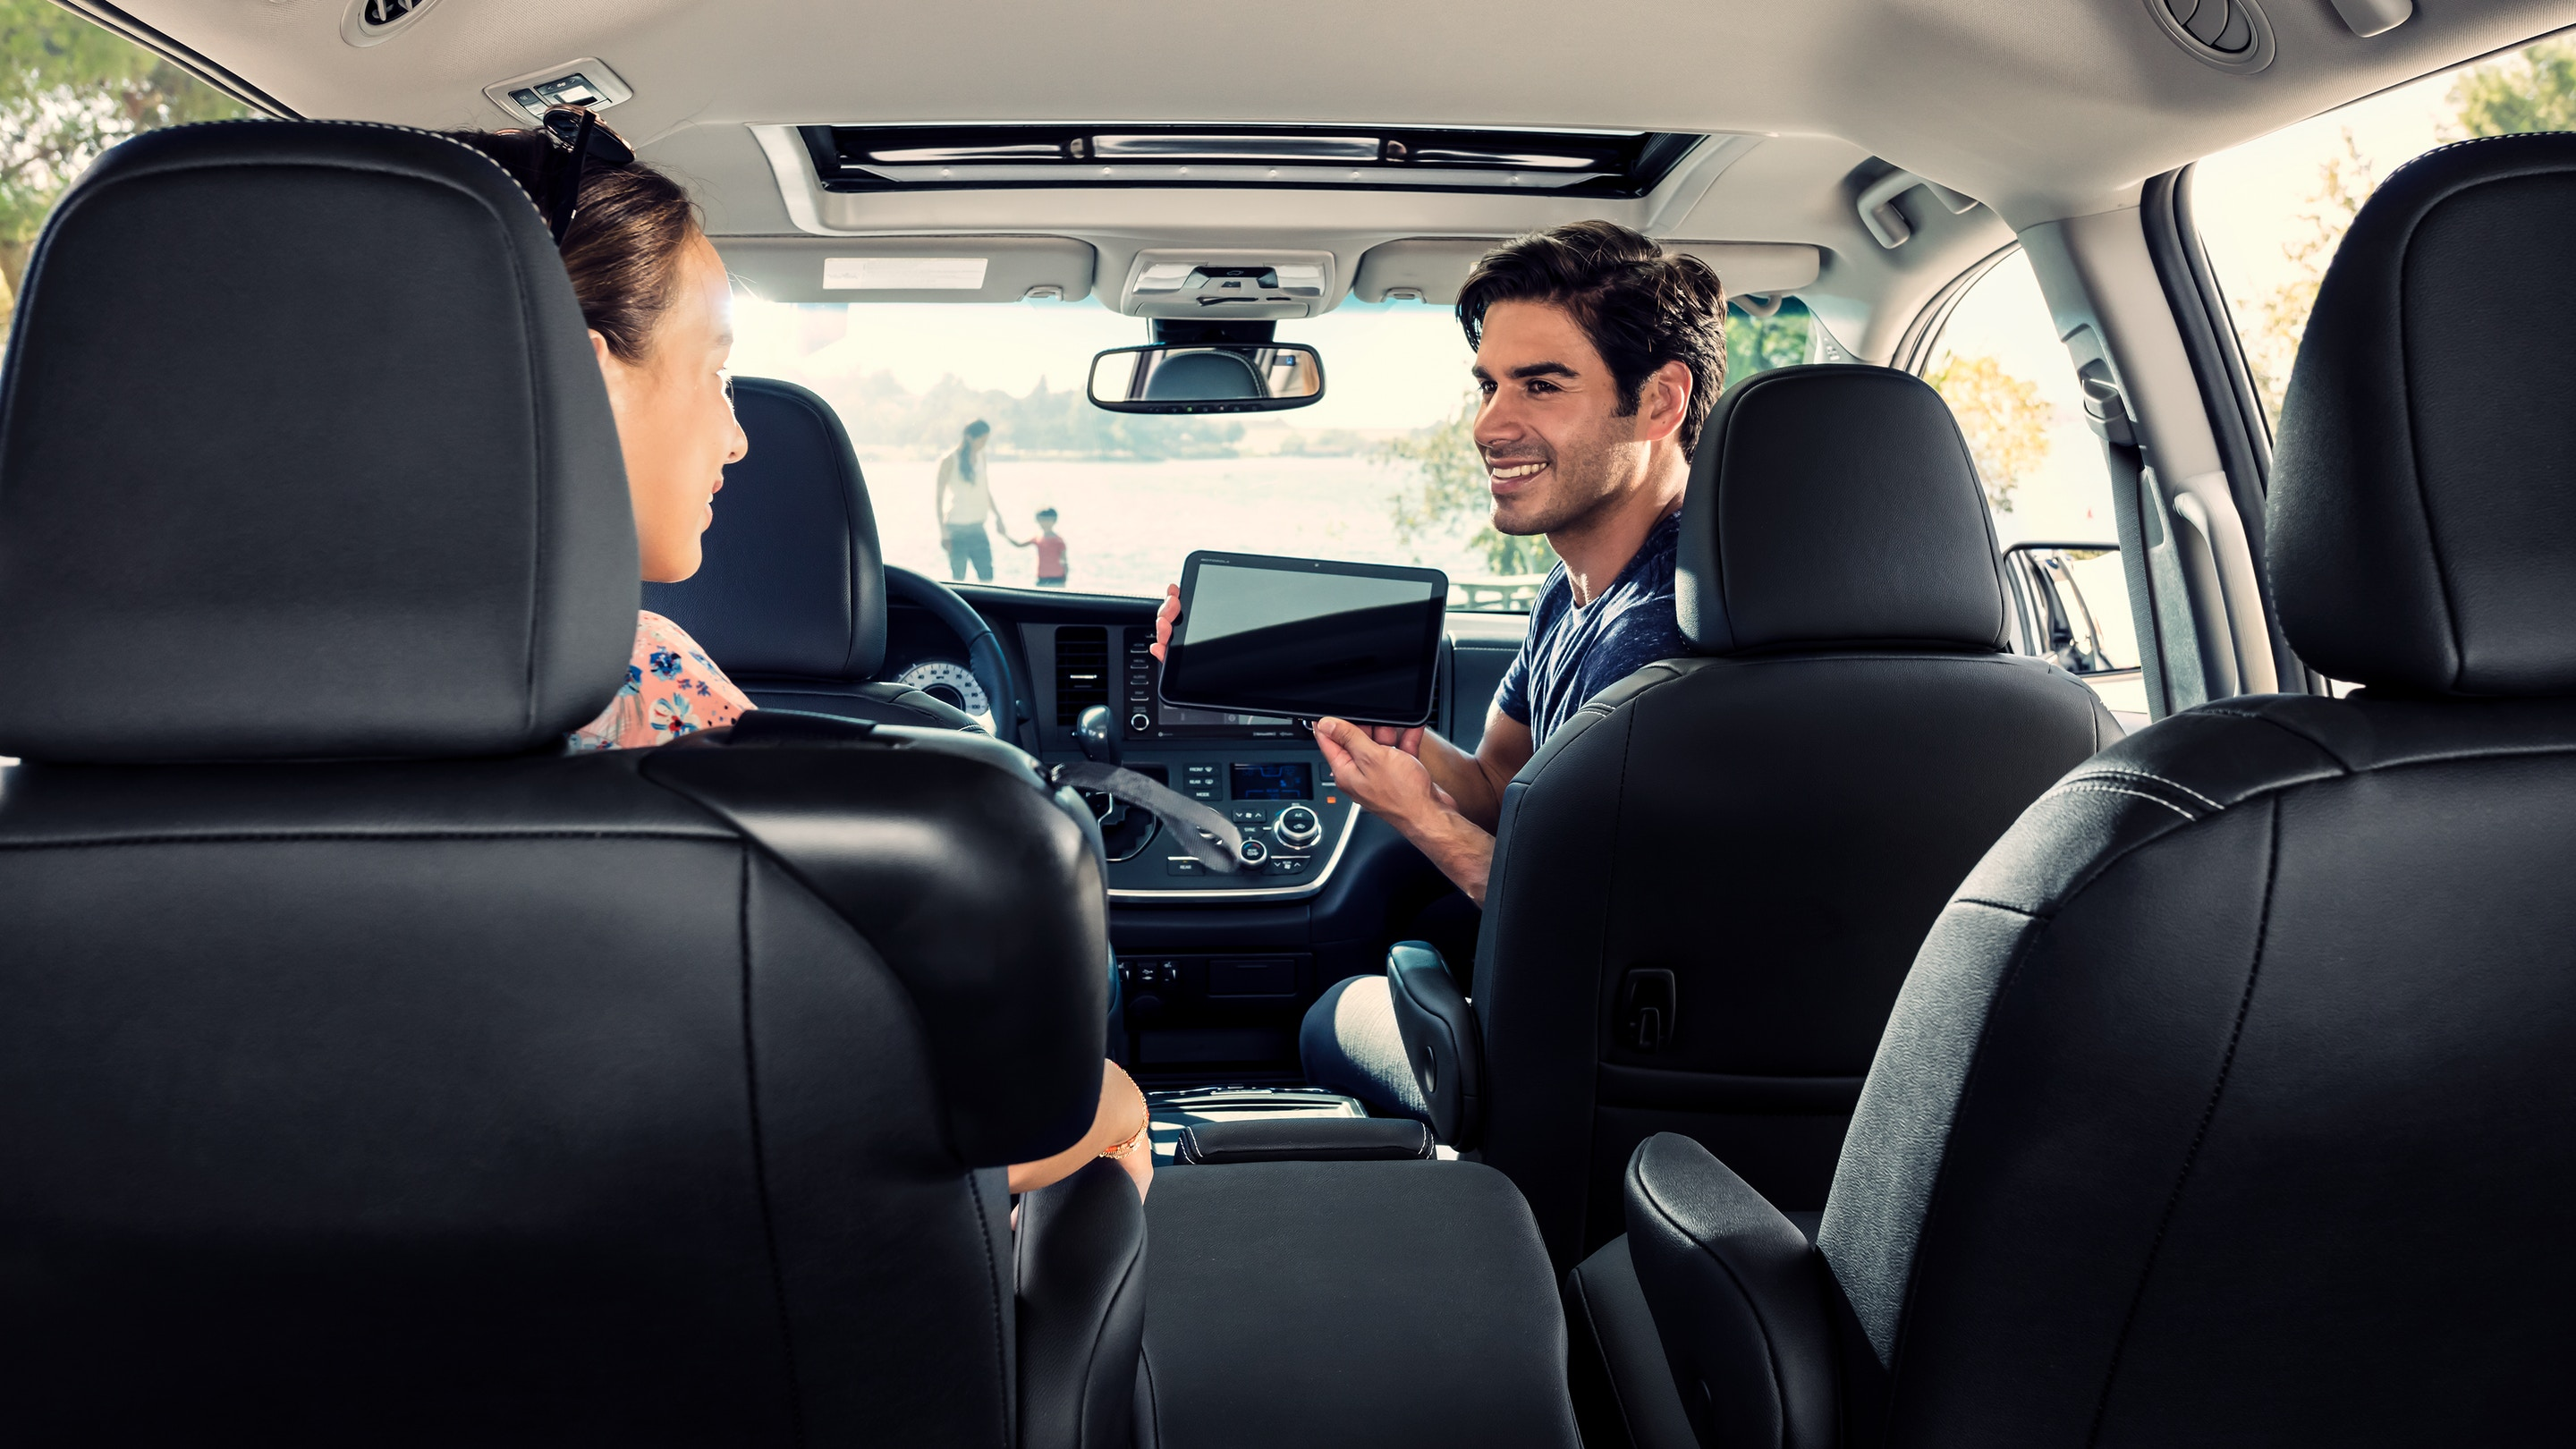 Bring Your Devices Along for the Ride in the 2020 Sienna